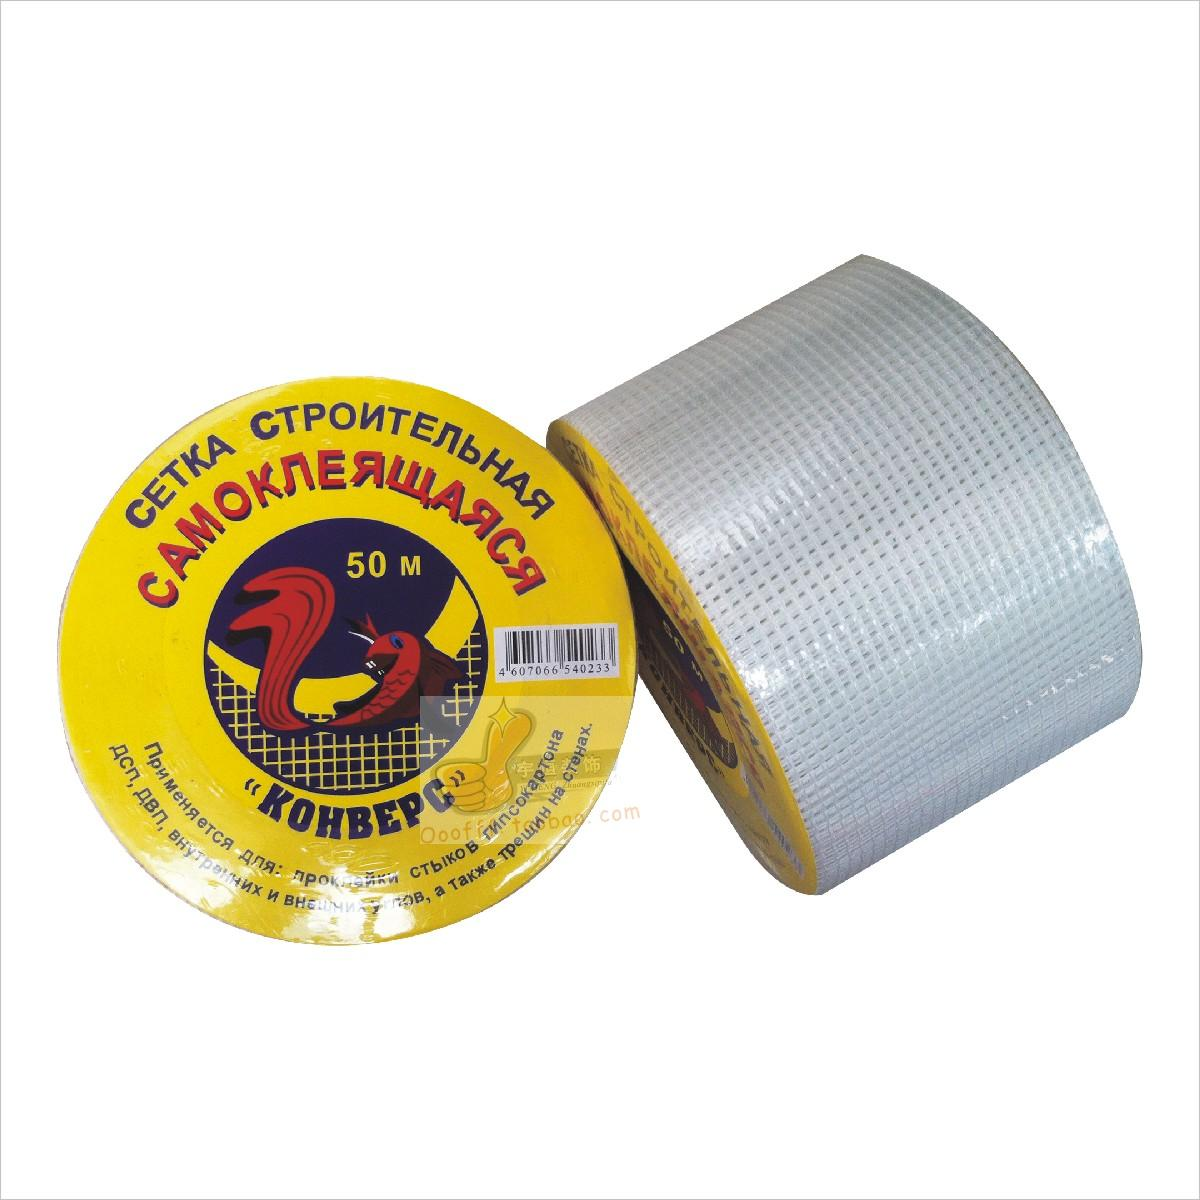 The import of self-adhesive mesh seam sealing tape with wall crack seam mesh with glass fiber mesh belt bag mail